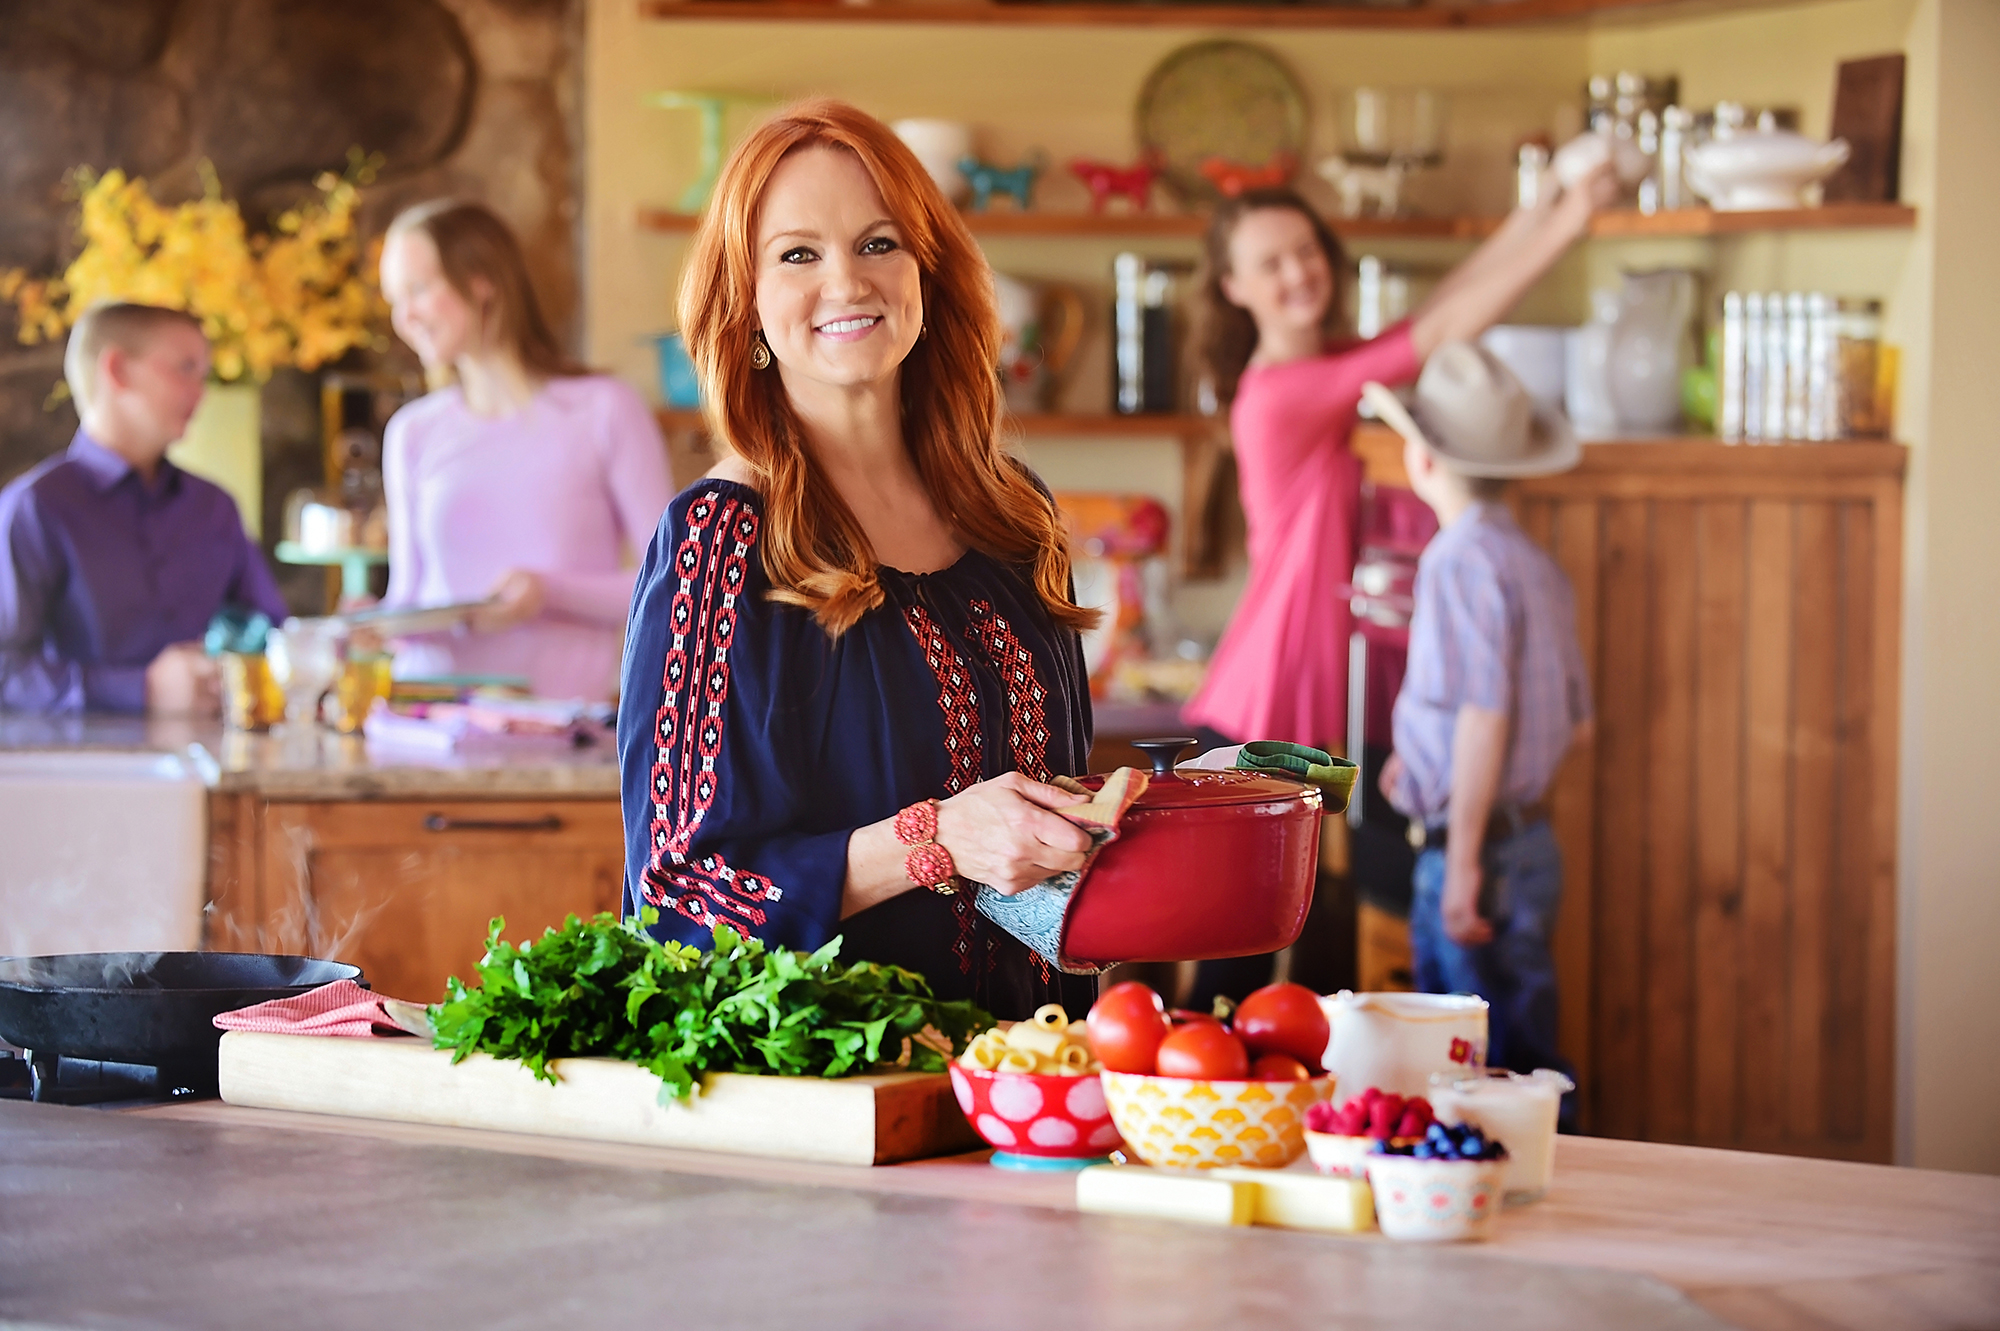 Get the First Look at Pioneer Woman Ree Drummond's New Magazine